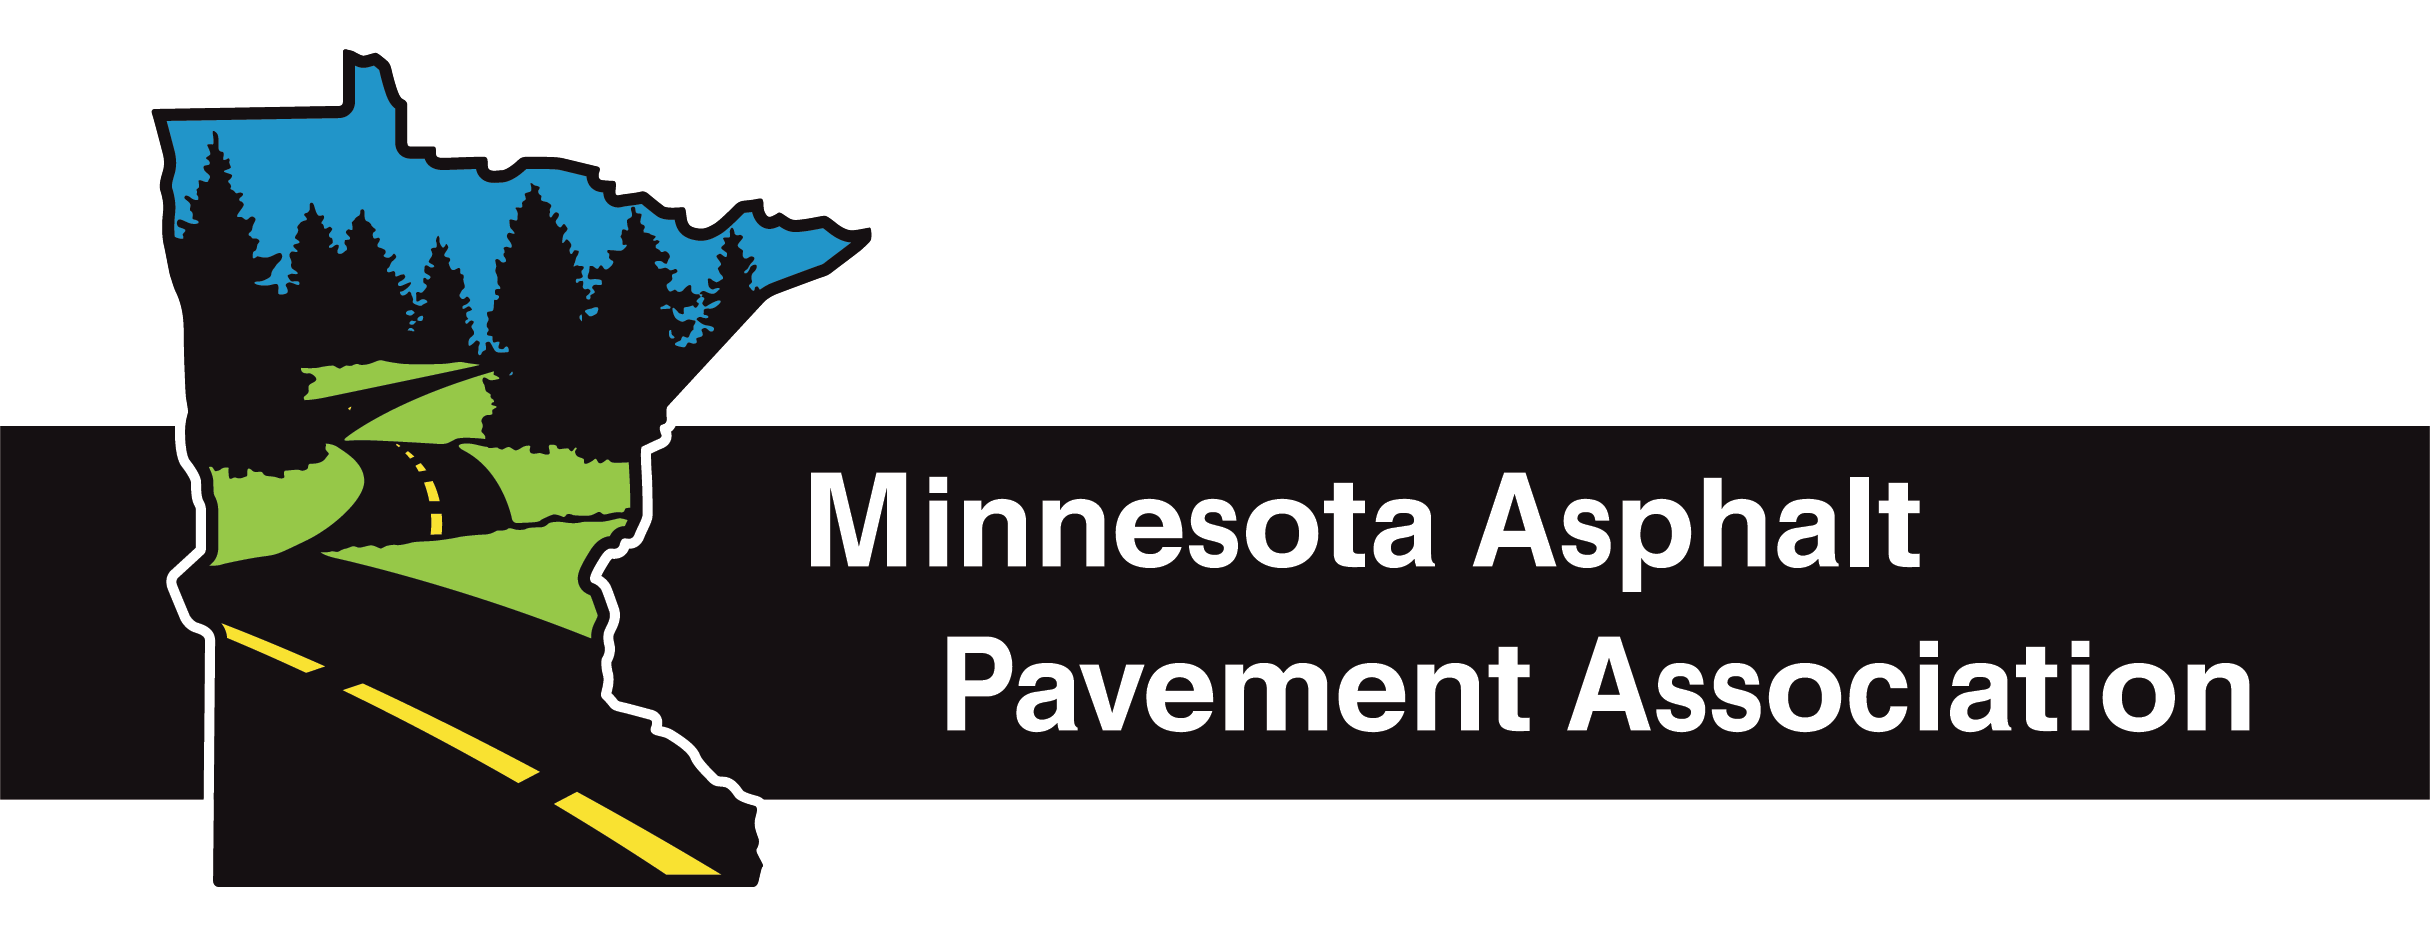 Minnesota Asphalt Pavement Association